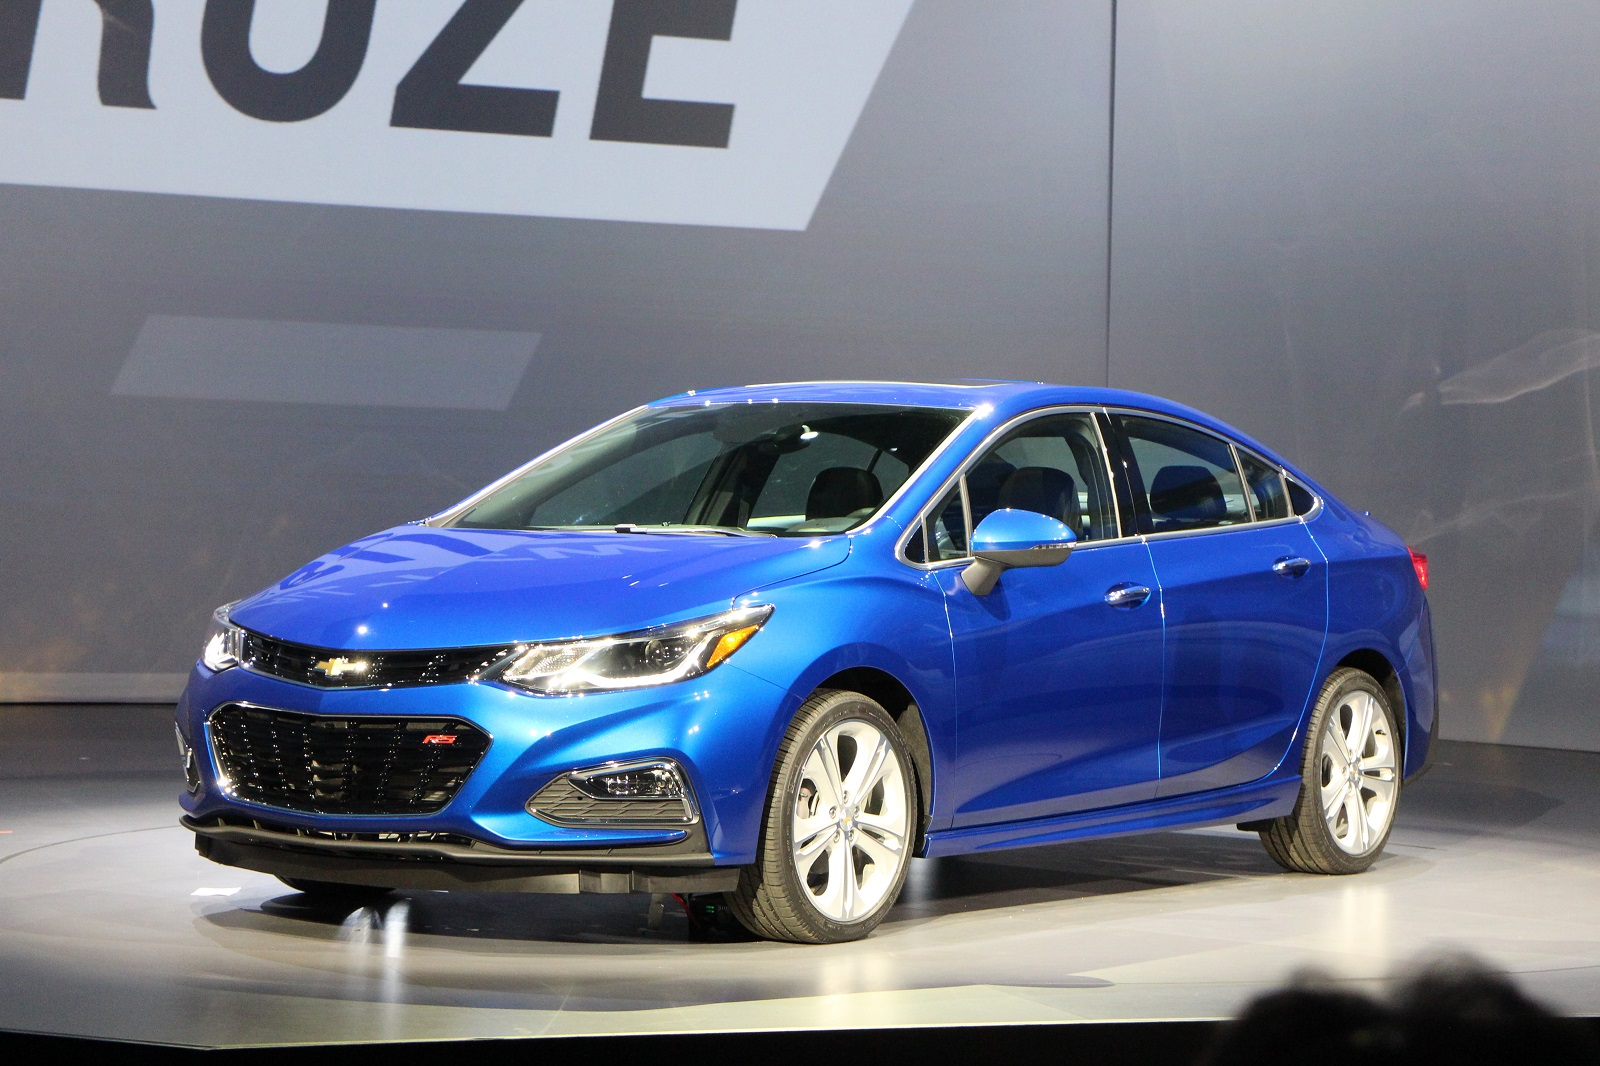 cruze review well and as lt car day plain reviews equipped photo article chevrolet